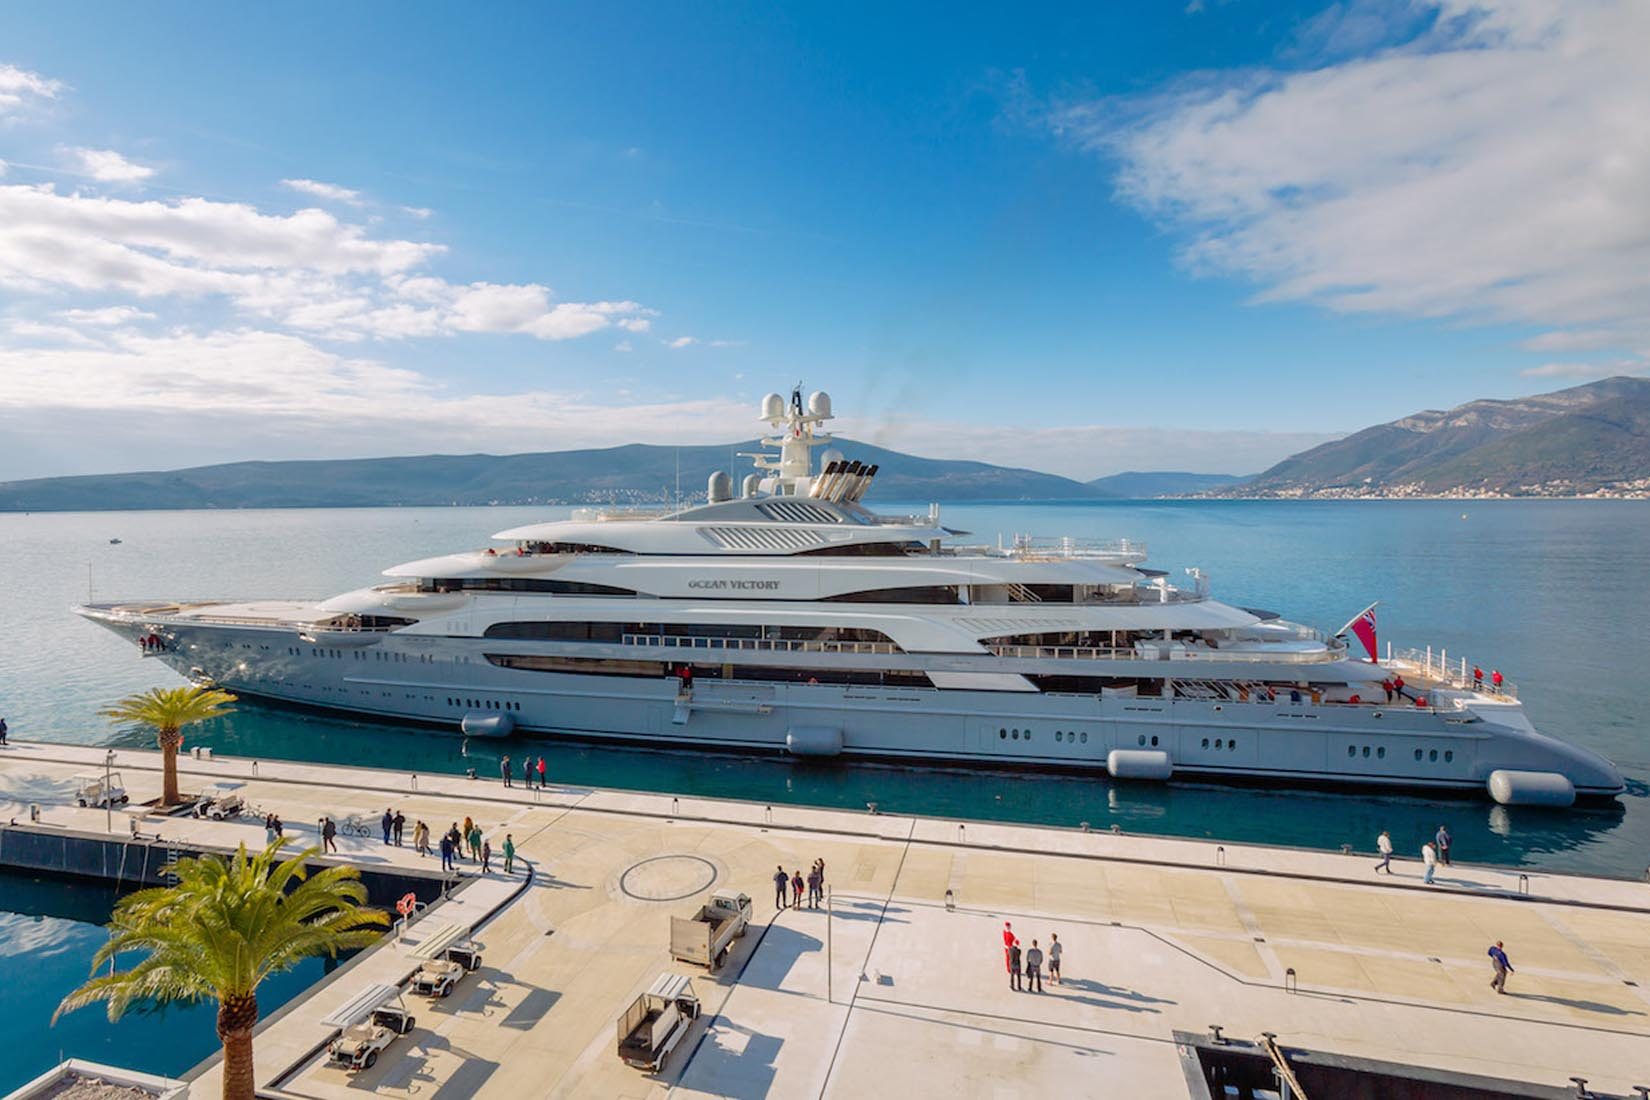 largest yacht ocean victory review Luxe Digital